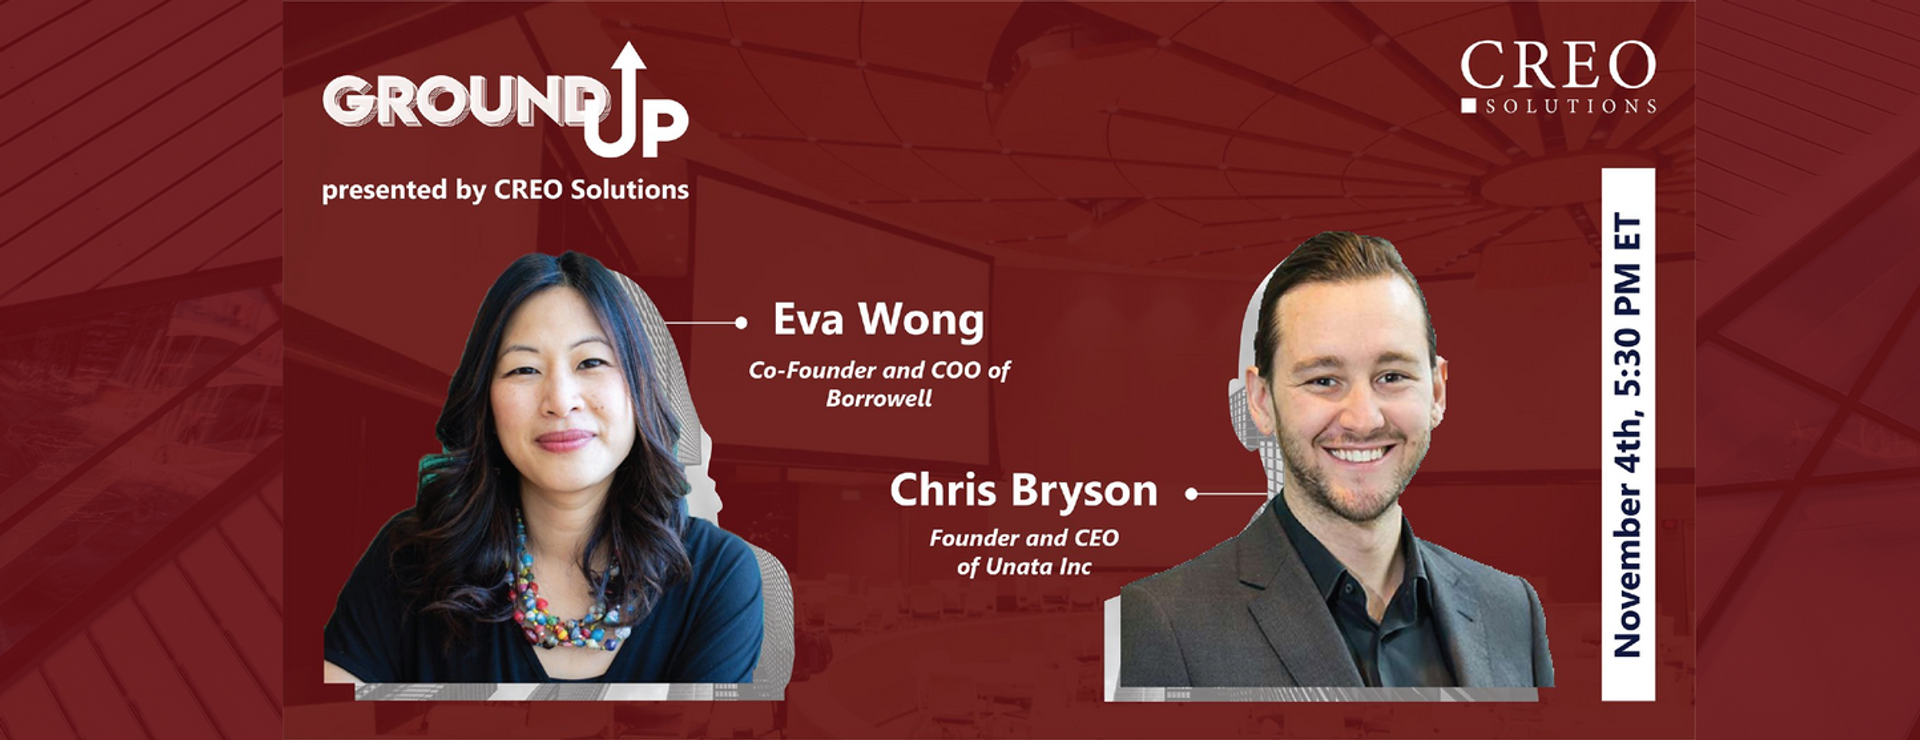 GROUND UP SPEAKER: Eva Wong & Chris Bryson